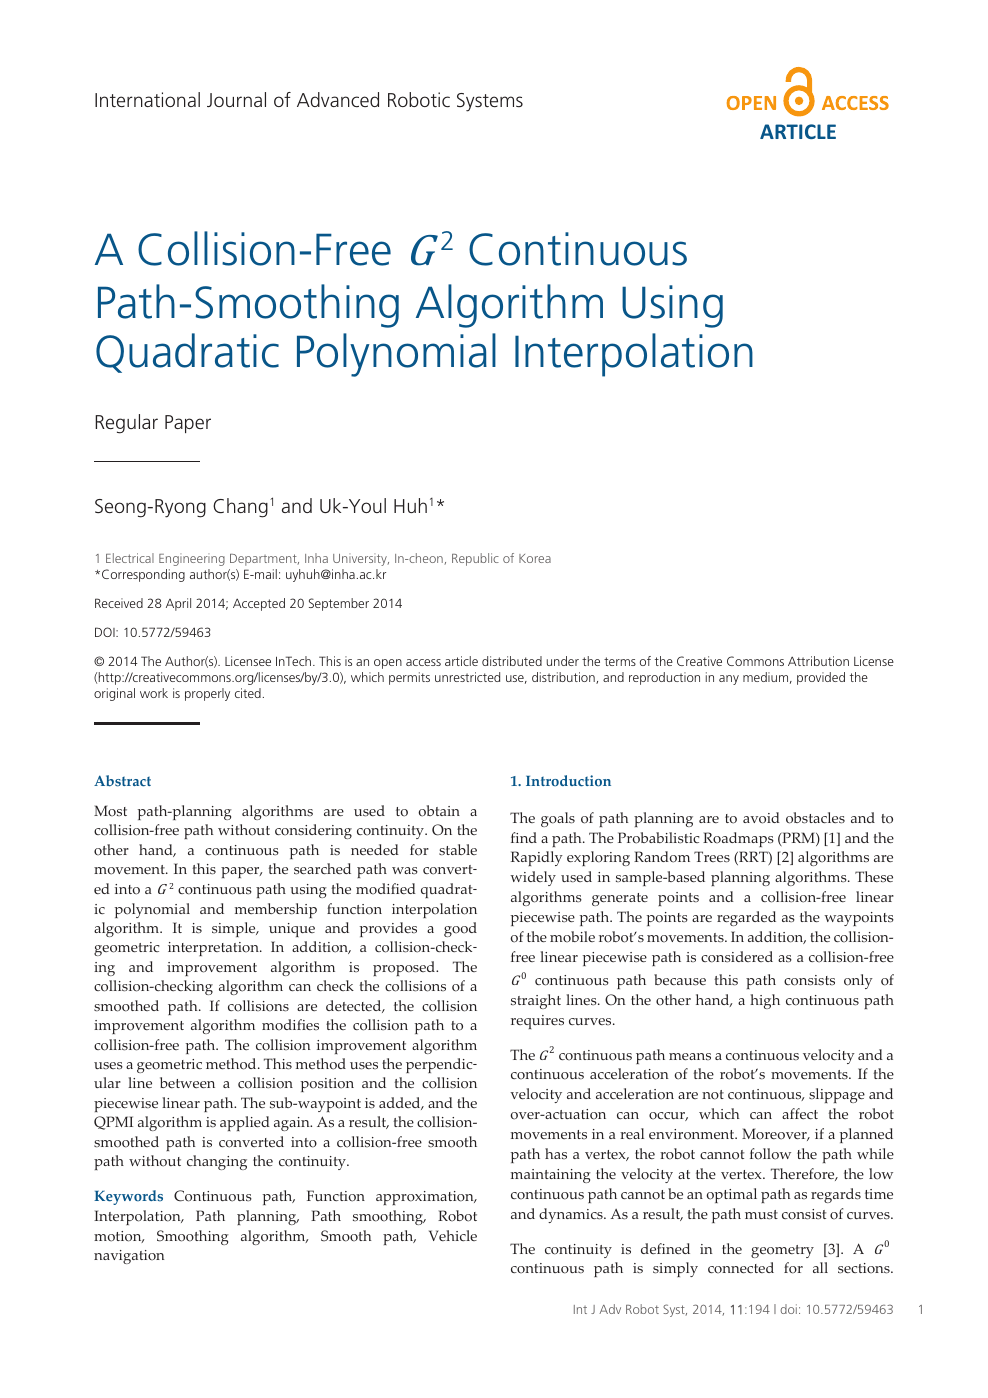 A Collision-Free G² Continuous Path-Smoothing Algorithm Using